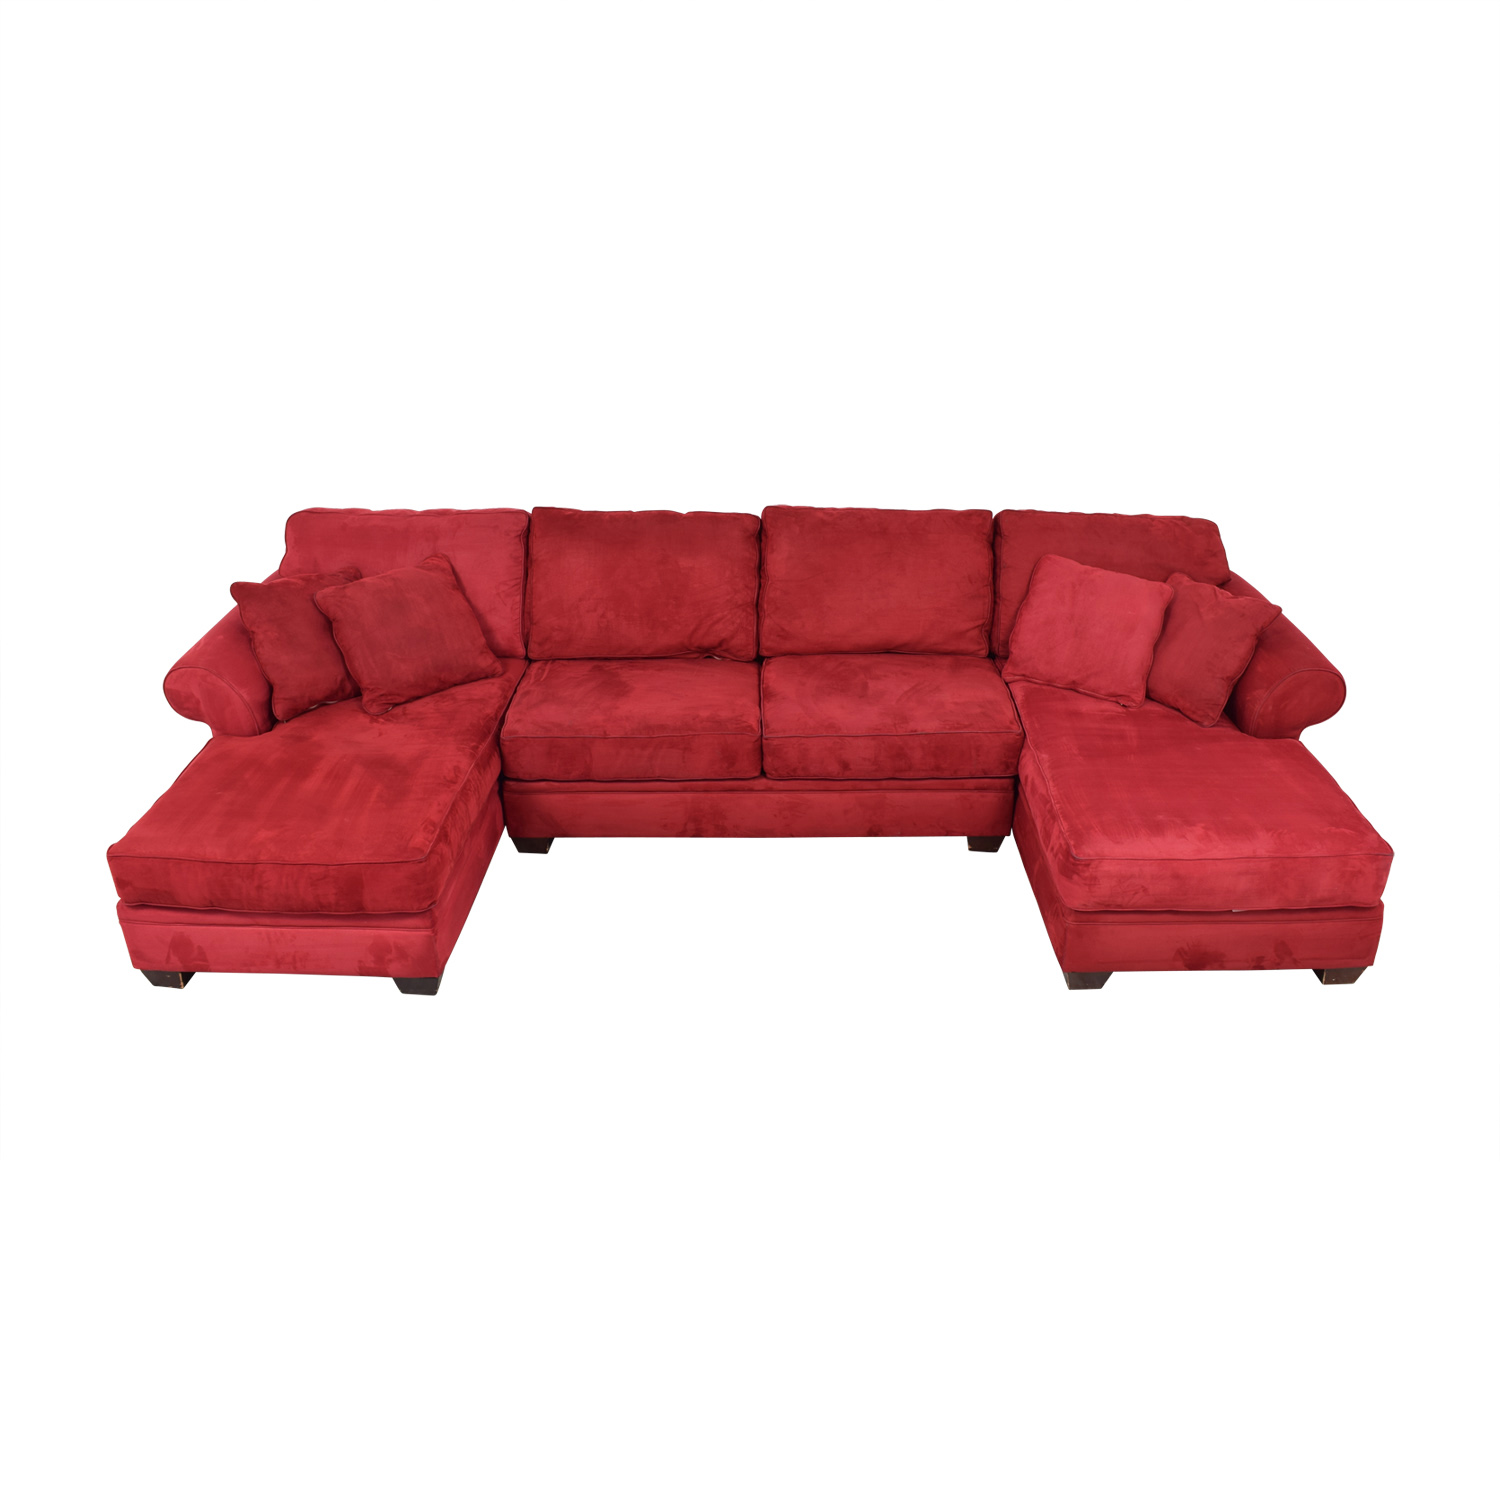 Macy's Macy's U-Shaped Red Double Chaise Sectional Sofas